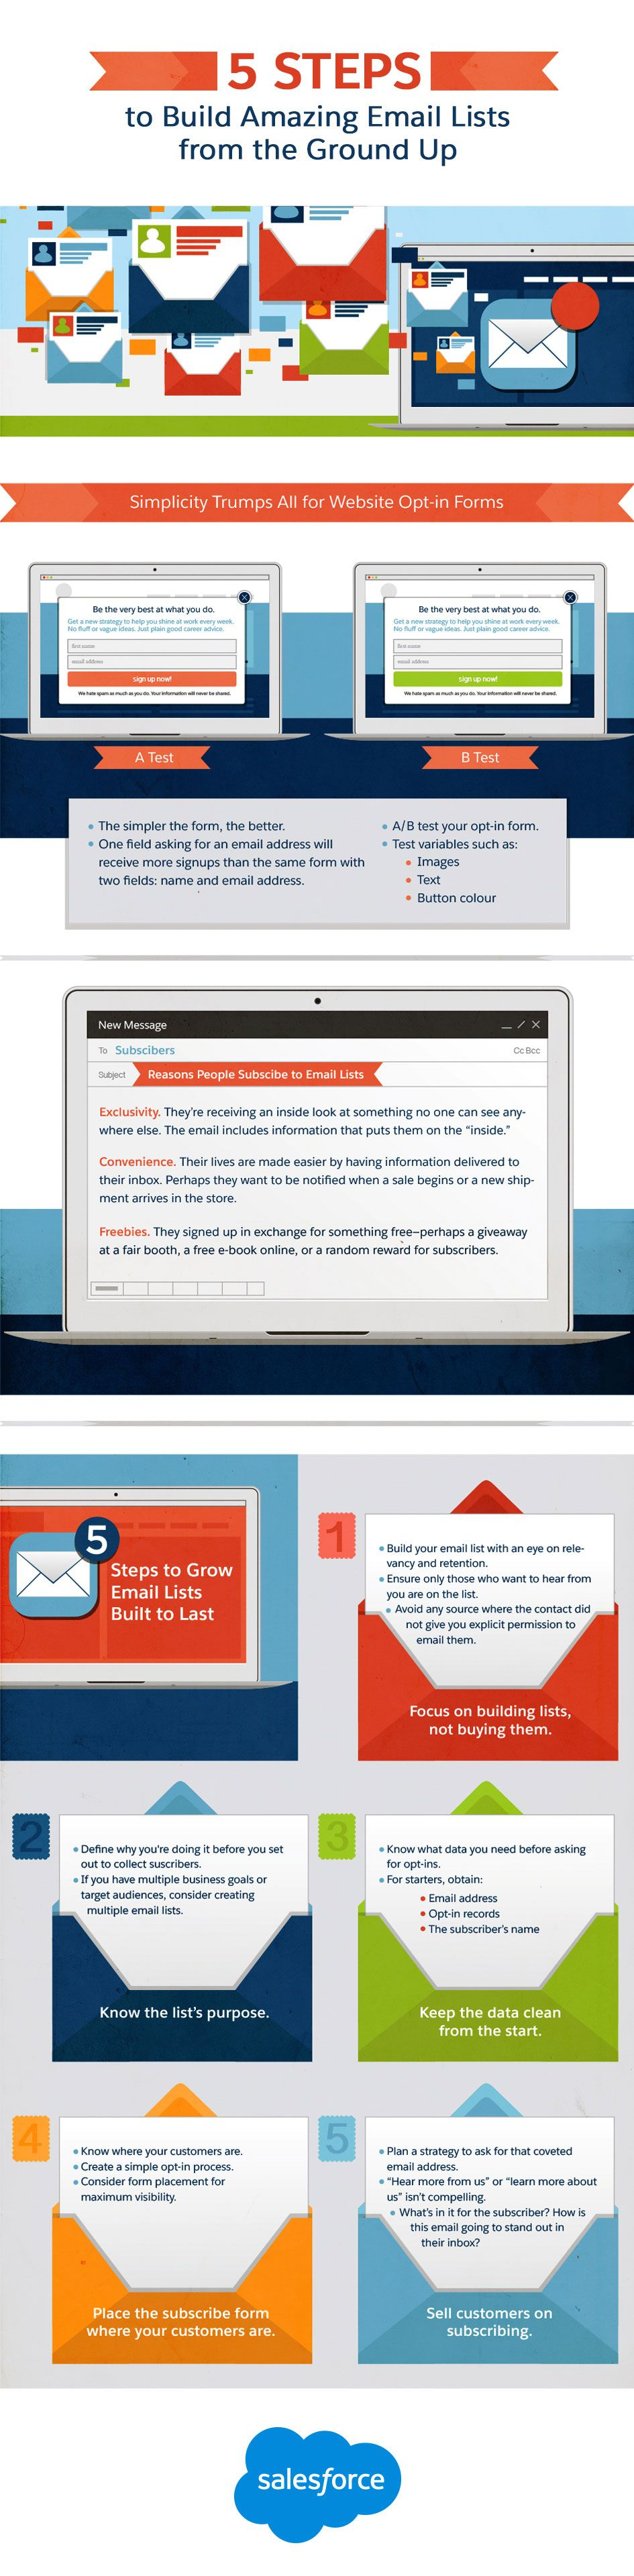 5 Steps to Build Amazing Email Lists from the Ground Up #infographic